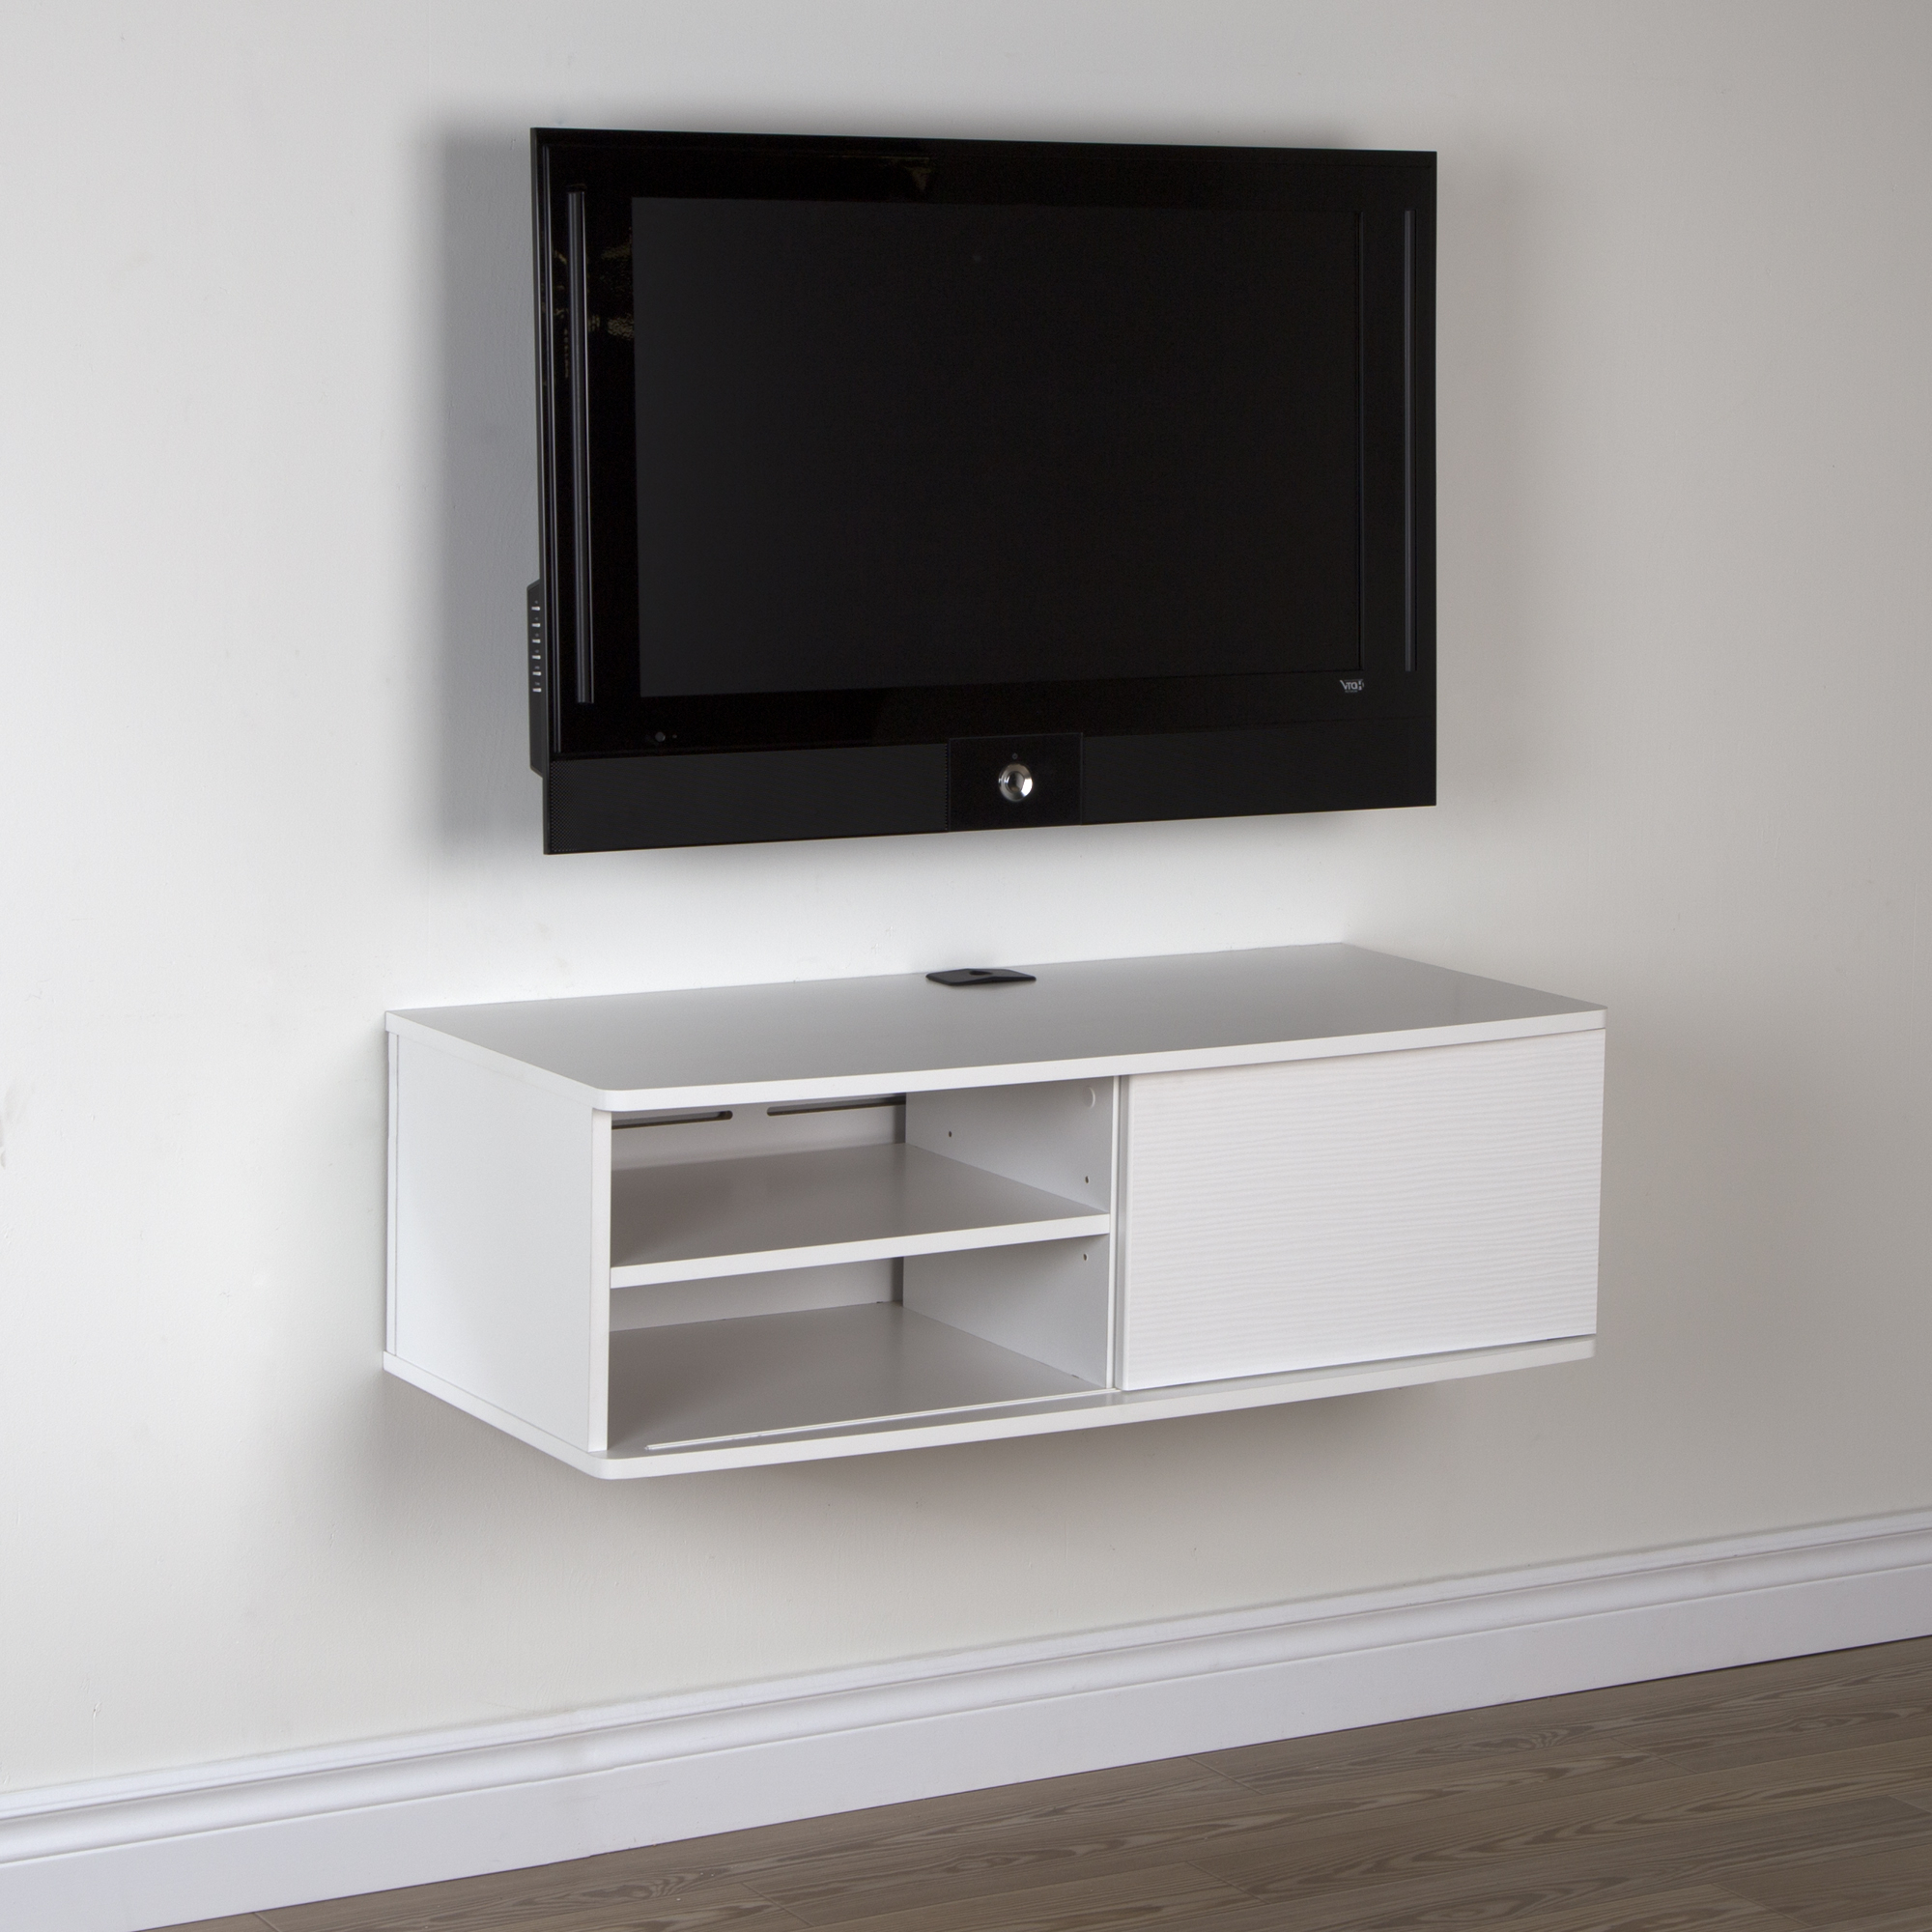 Tv Stands 38 Inches Wide Throughout Recent Wall Mounted Tv Stand For Tvs Up To 38 Inch White Sliding Door Media (View 8 of 20)